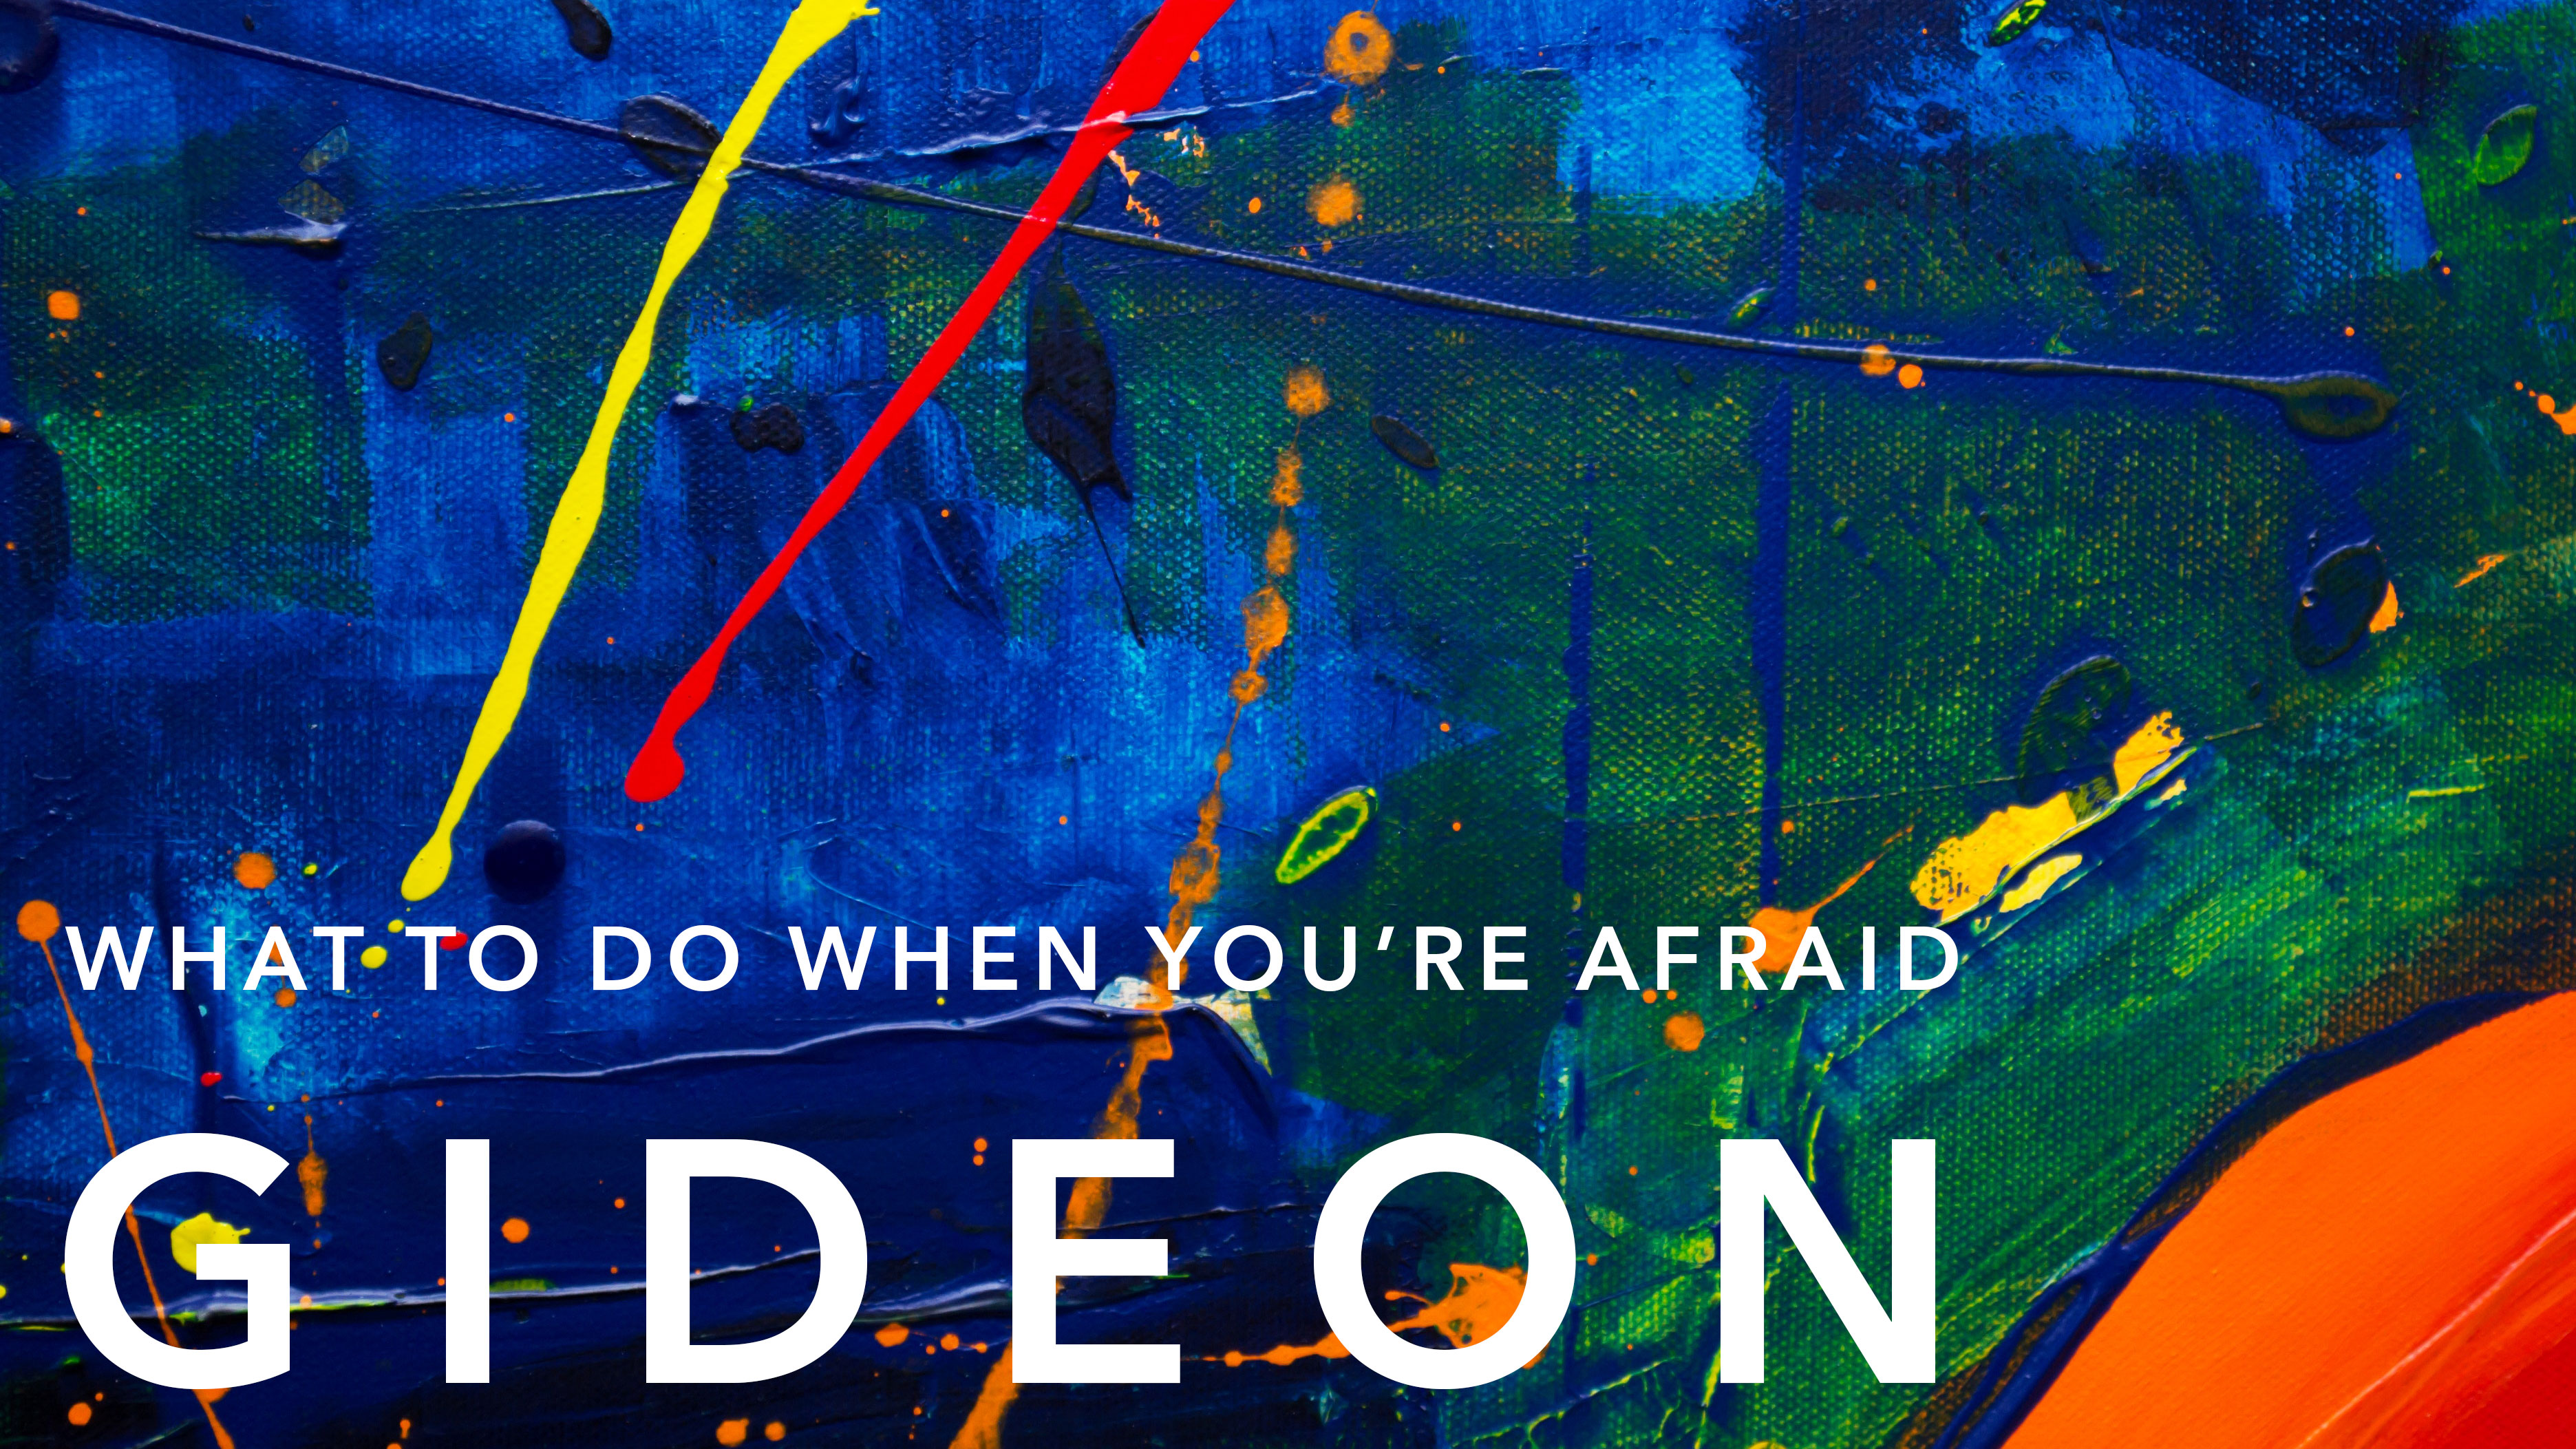 gideon: what to do when you're afraid